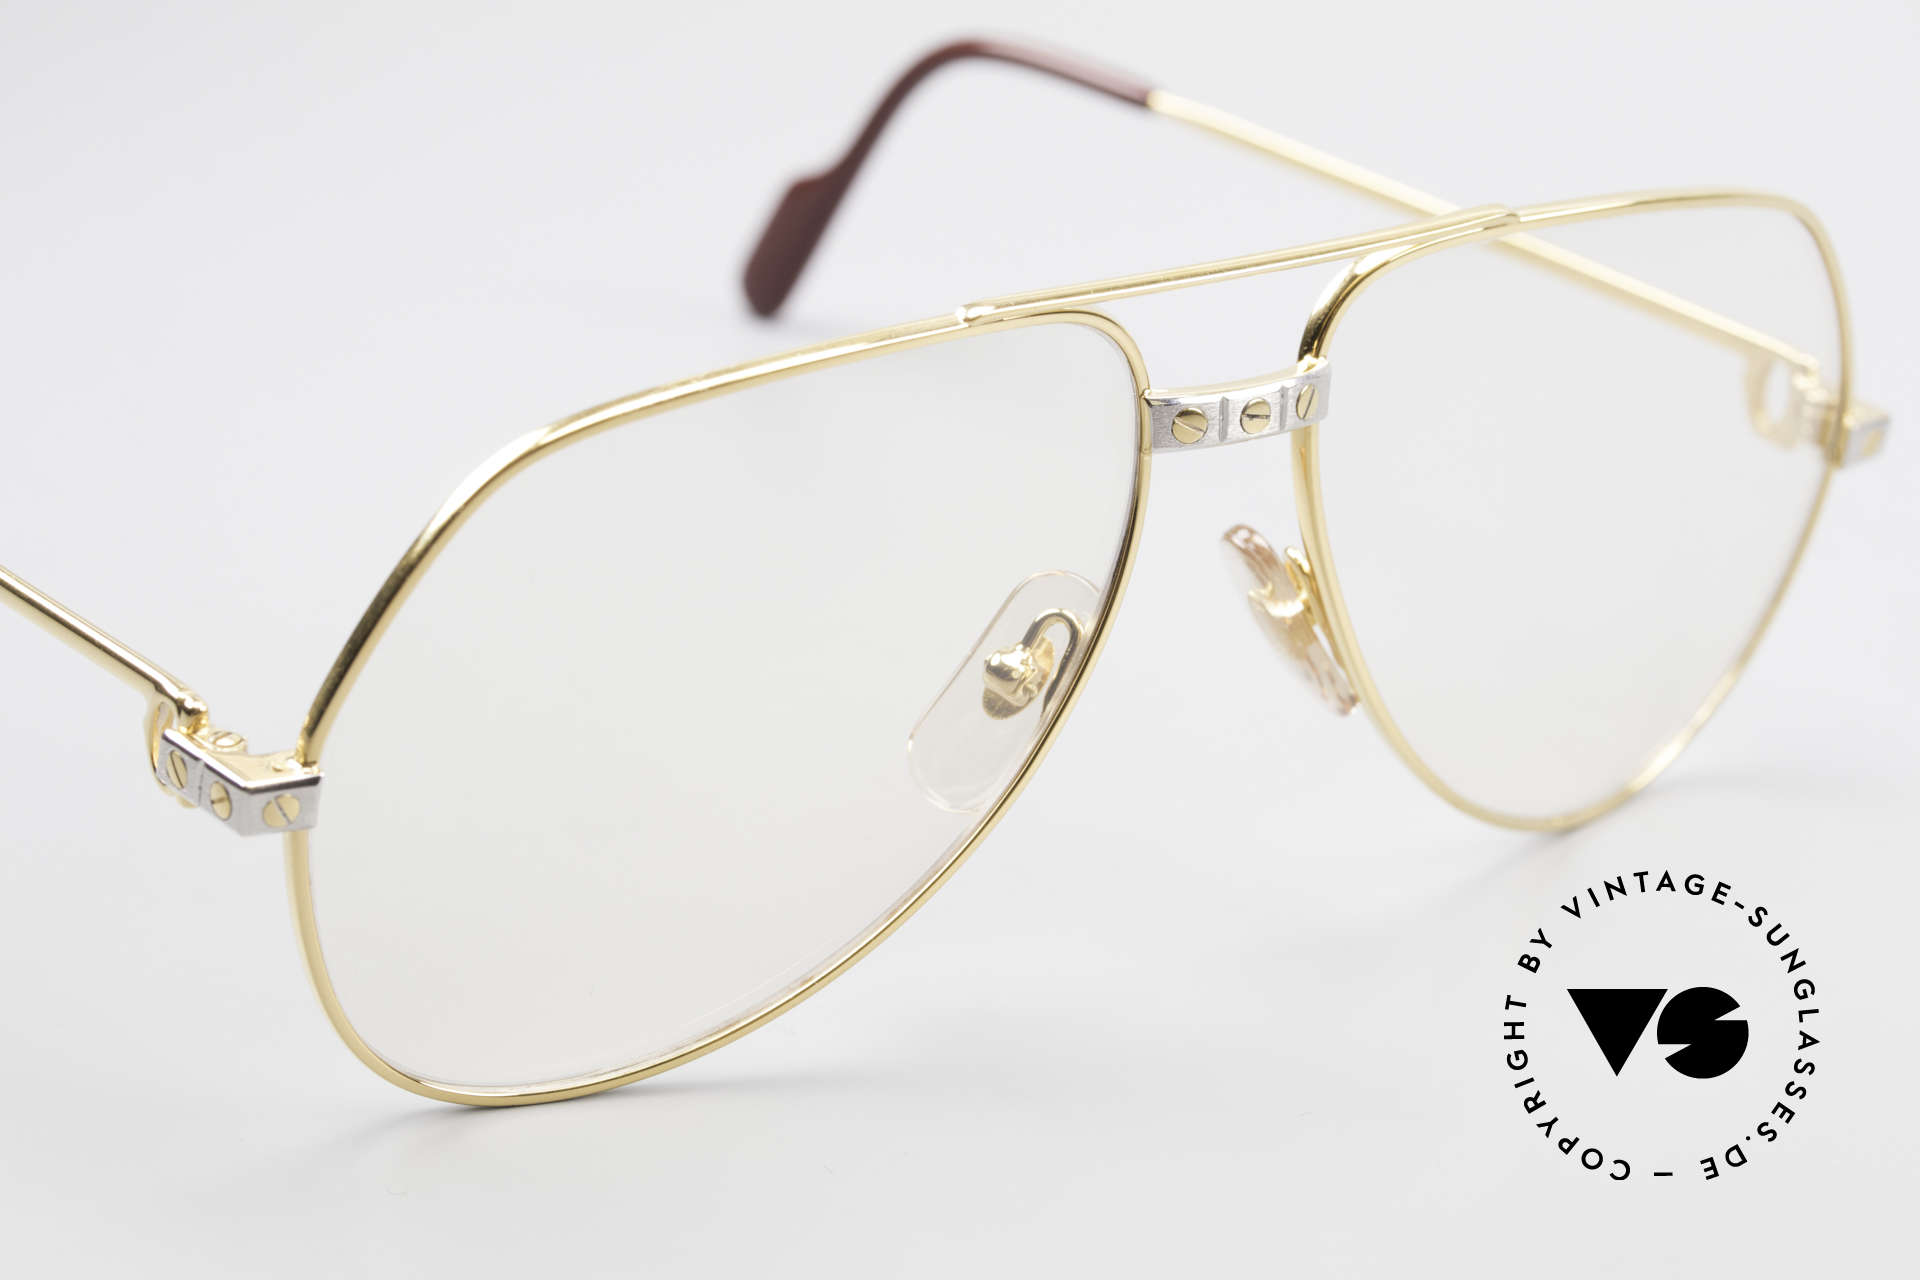 Cartier Vendome Santos - M Changeable Cartier Lenses, the lenses are darker in the sun and lighter in the shade, Made for Men